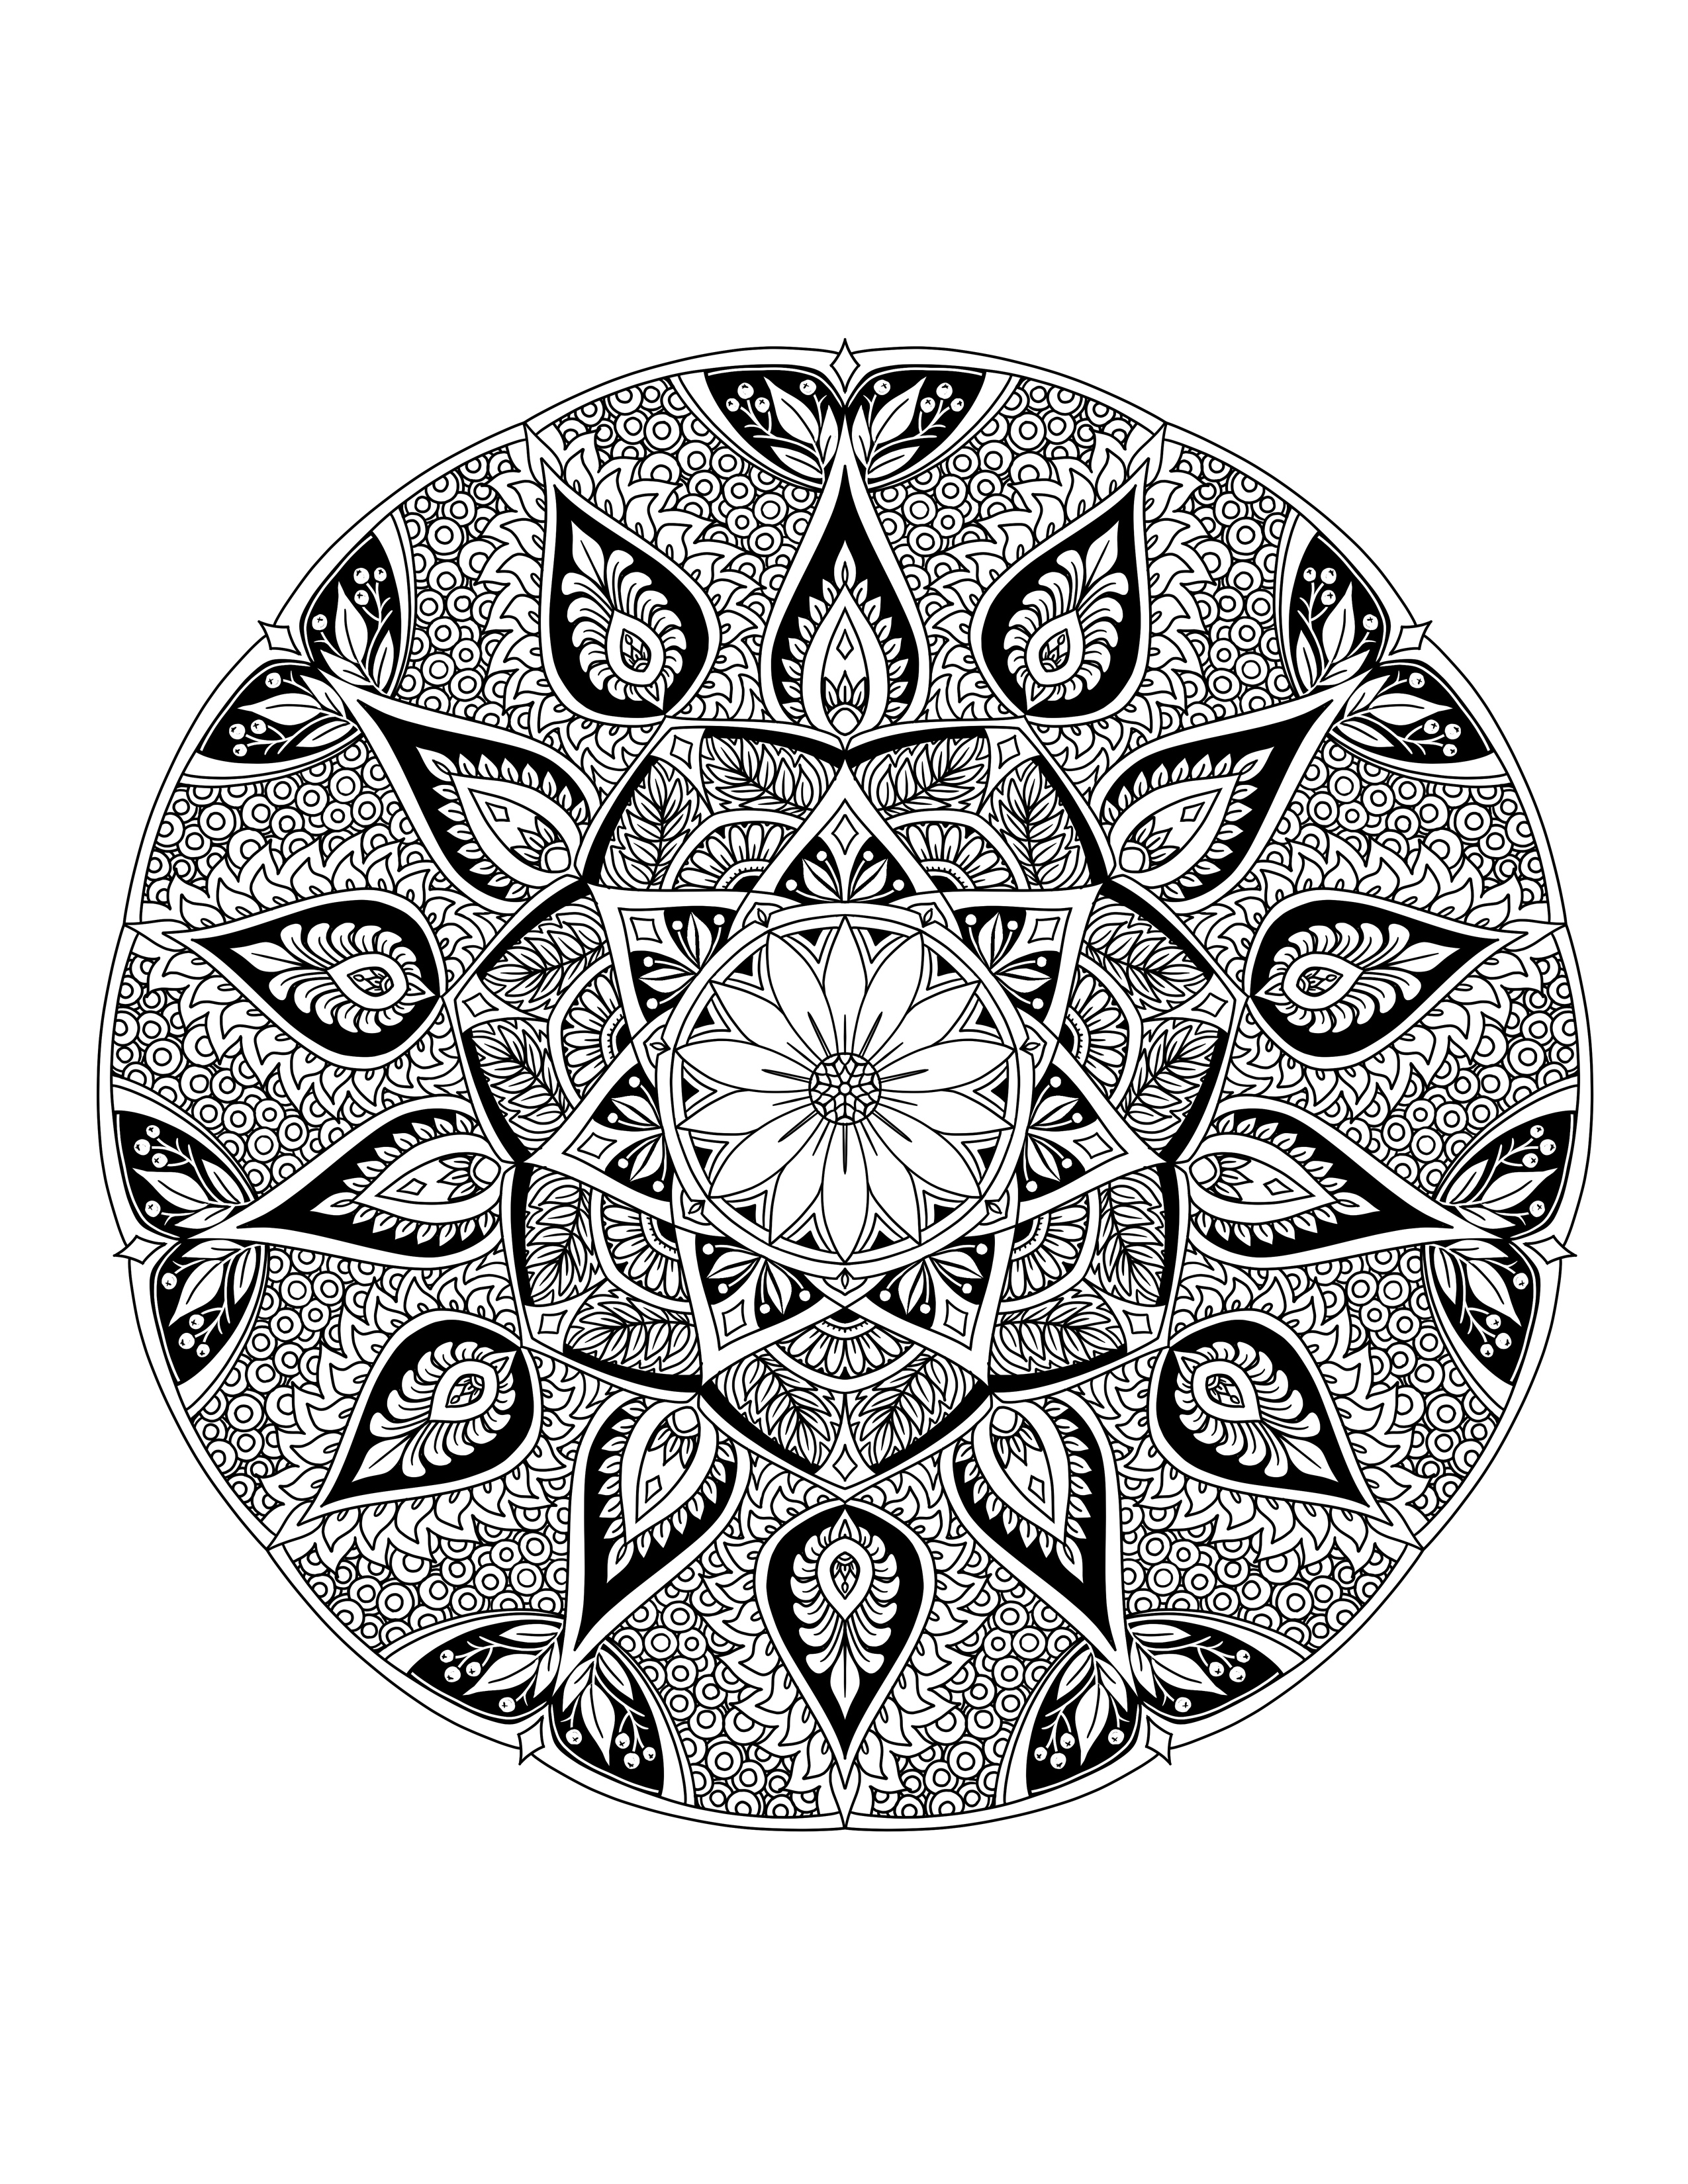 How To Draw A Mandala In Clip Studio Paint Karyn Lewis